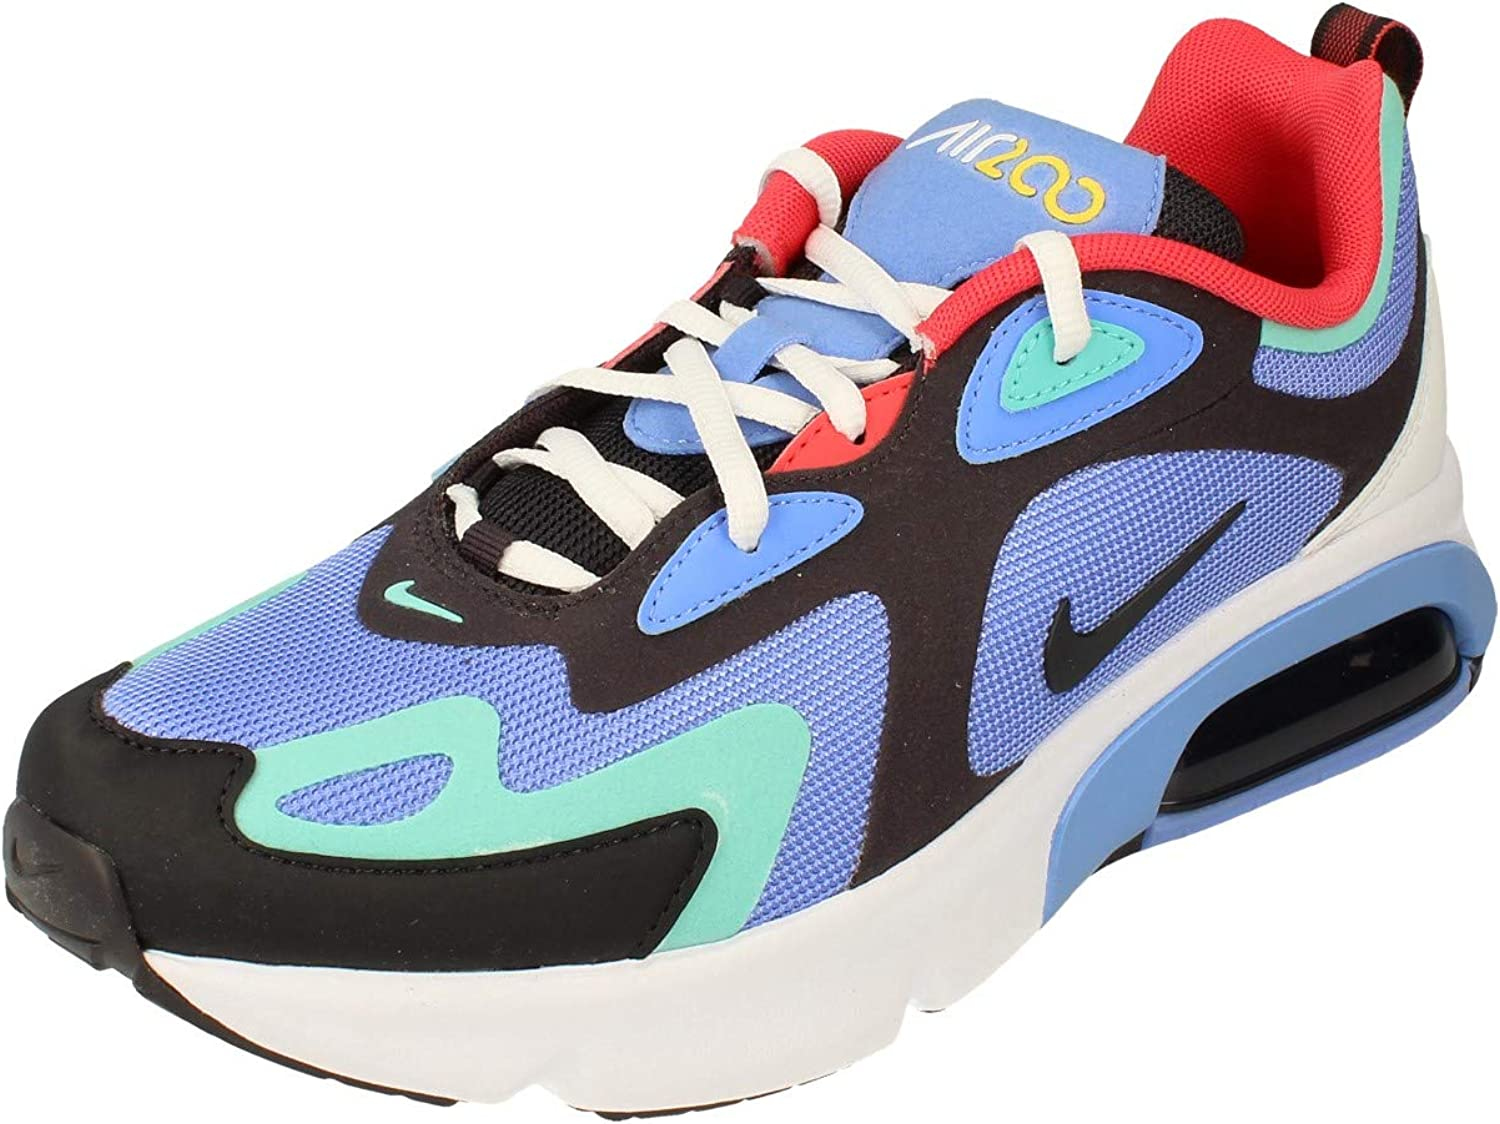 Nike Air Max 200 GS Trainers AT5627 Sneakers Shoes (UK